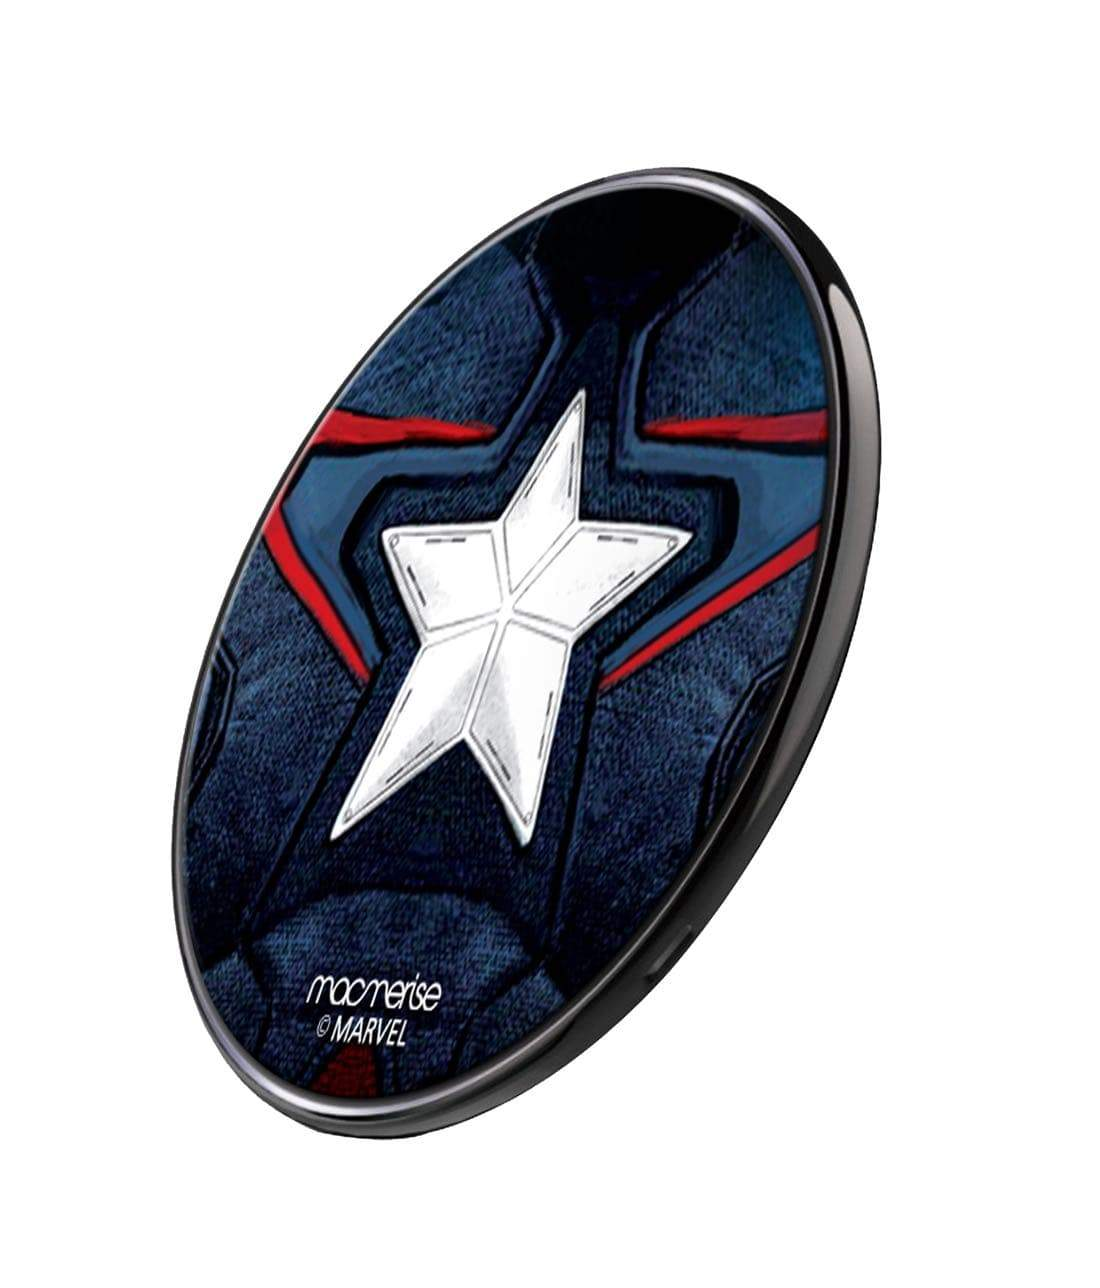 Captain America Suit Wireless Charger by Macmerise -Macmerise - India - www.superherotoystore.com